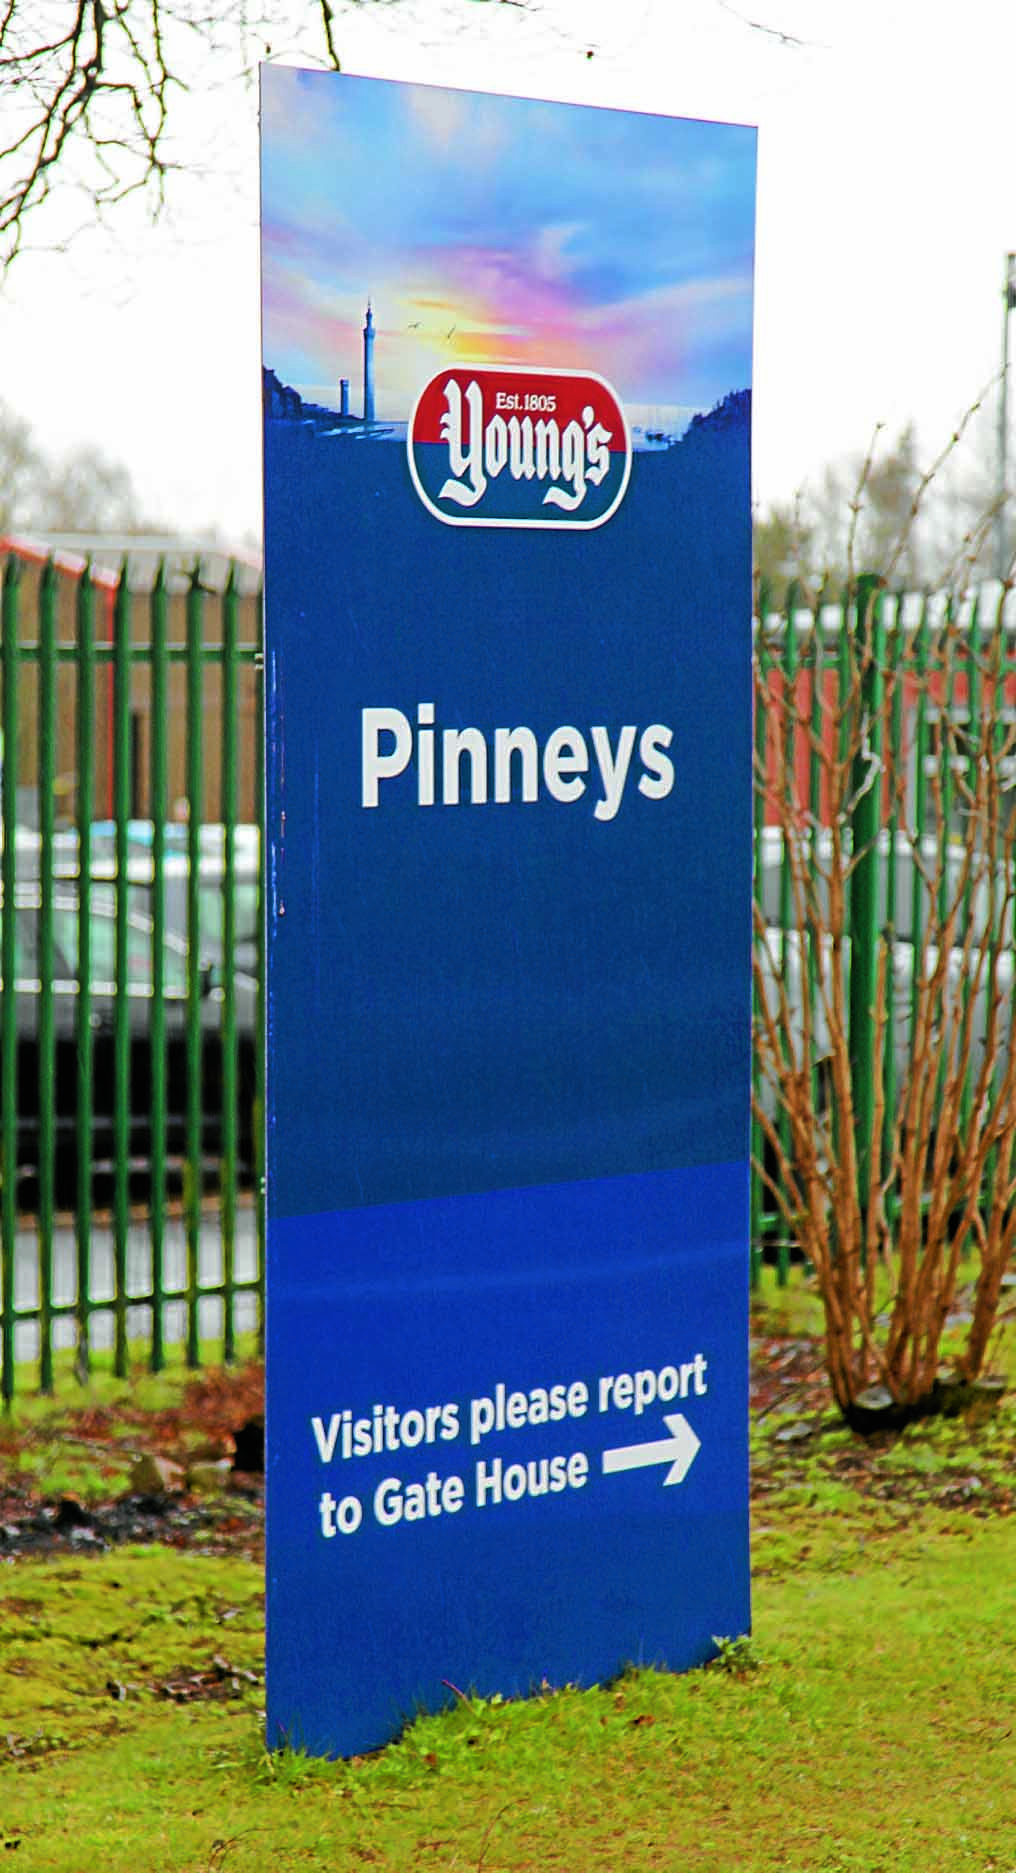 Pinneys' parent company for sale